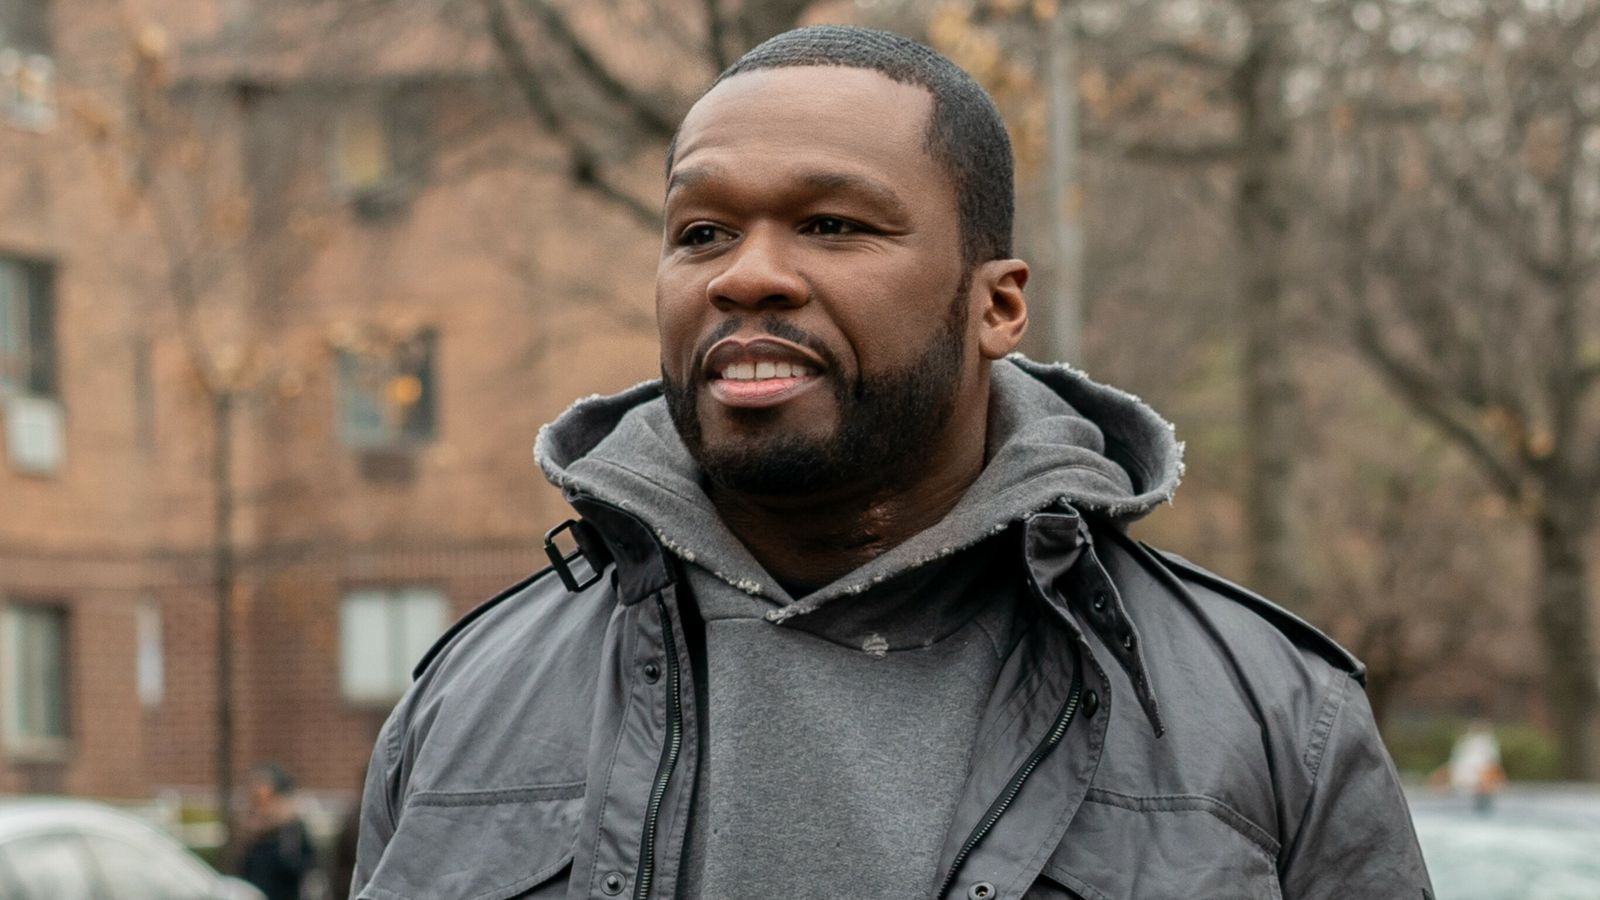 50 Cent on Power Book III: Raising Kanan – Rapper Curtis Jackson says he used childhood experiences for new show